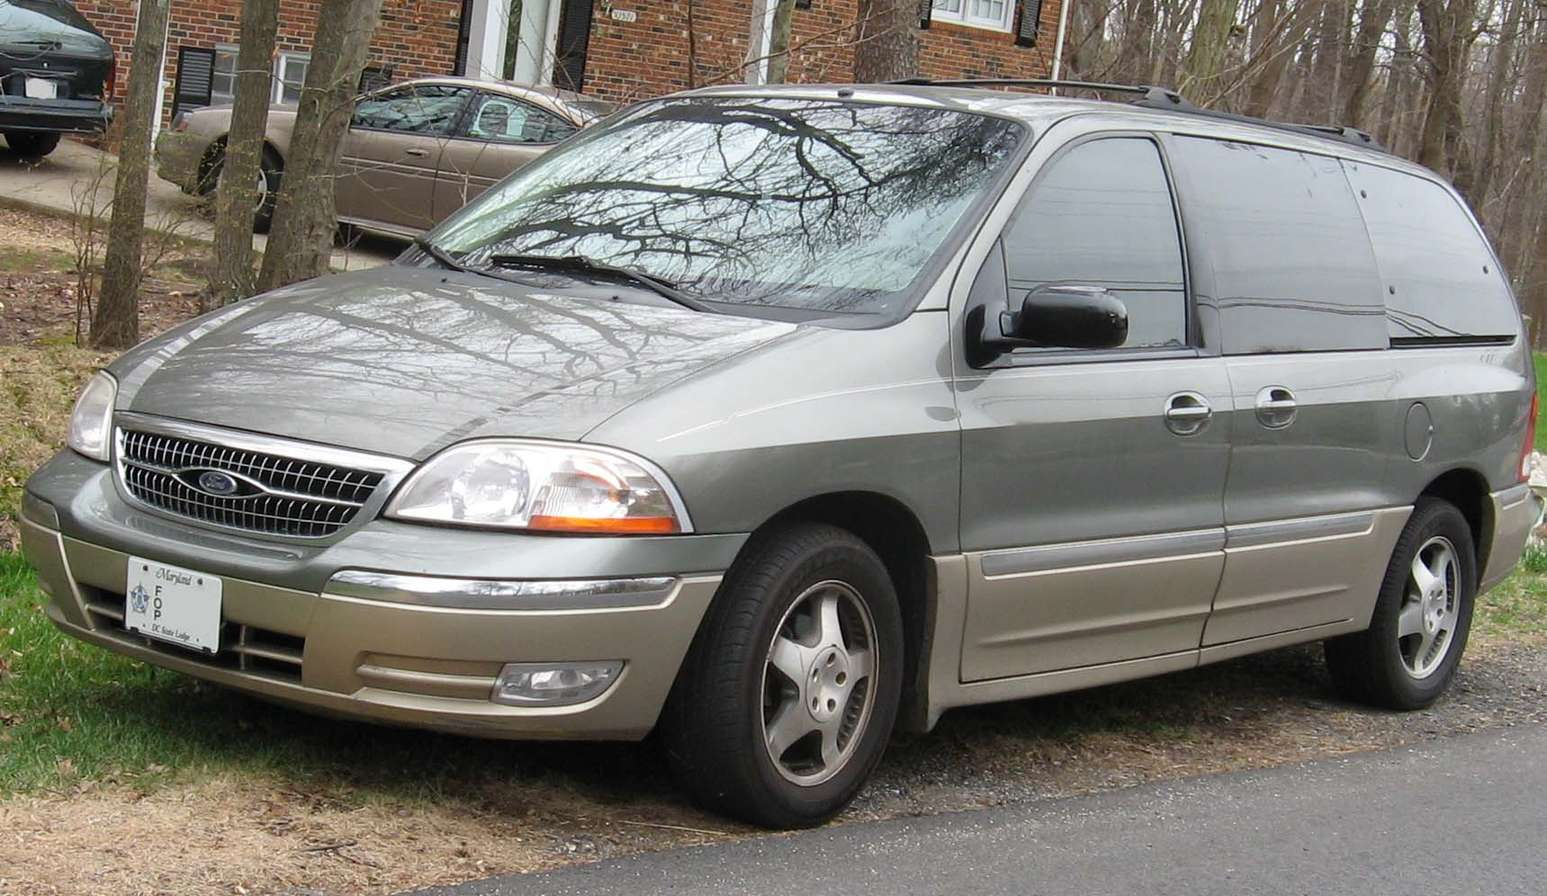 Ford Windstar #8614080